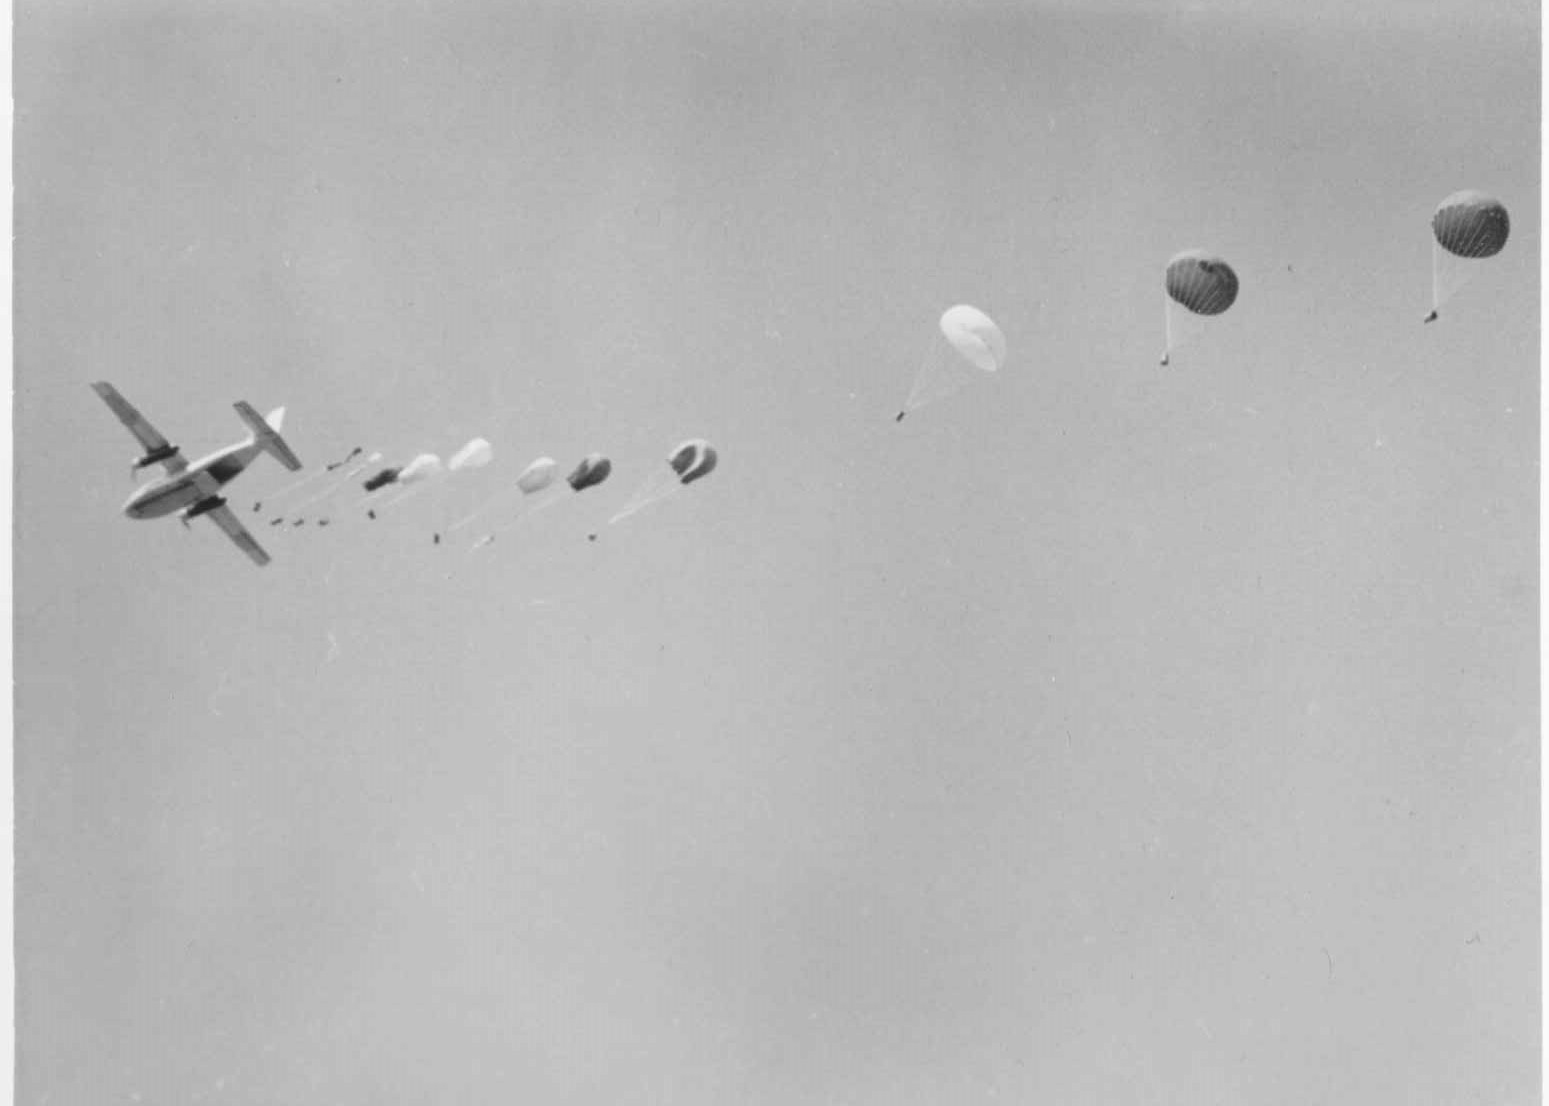 Black and white photograph of a twin-engine airplane dropping supplies via parachute during flight